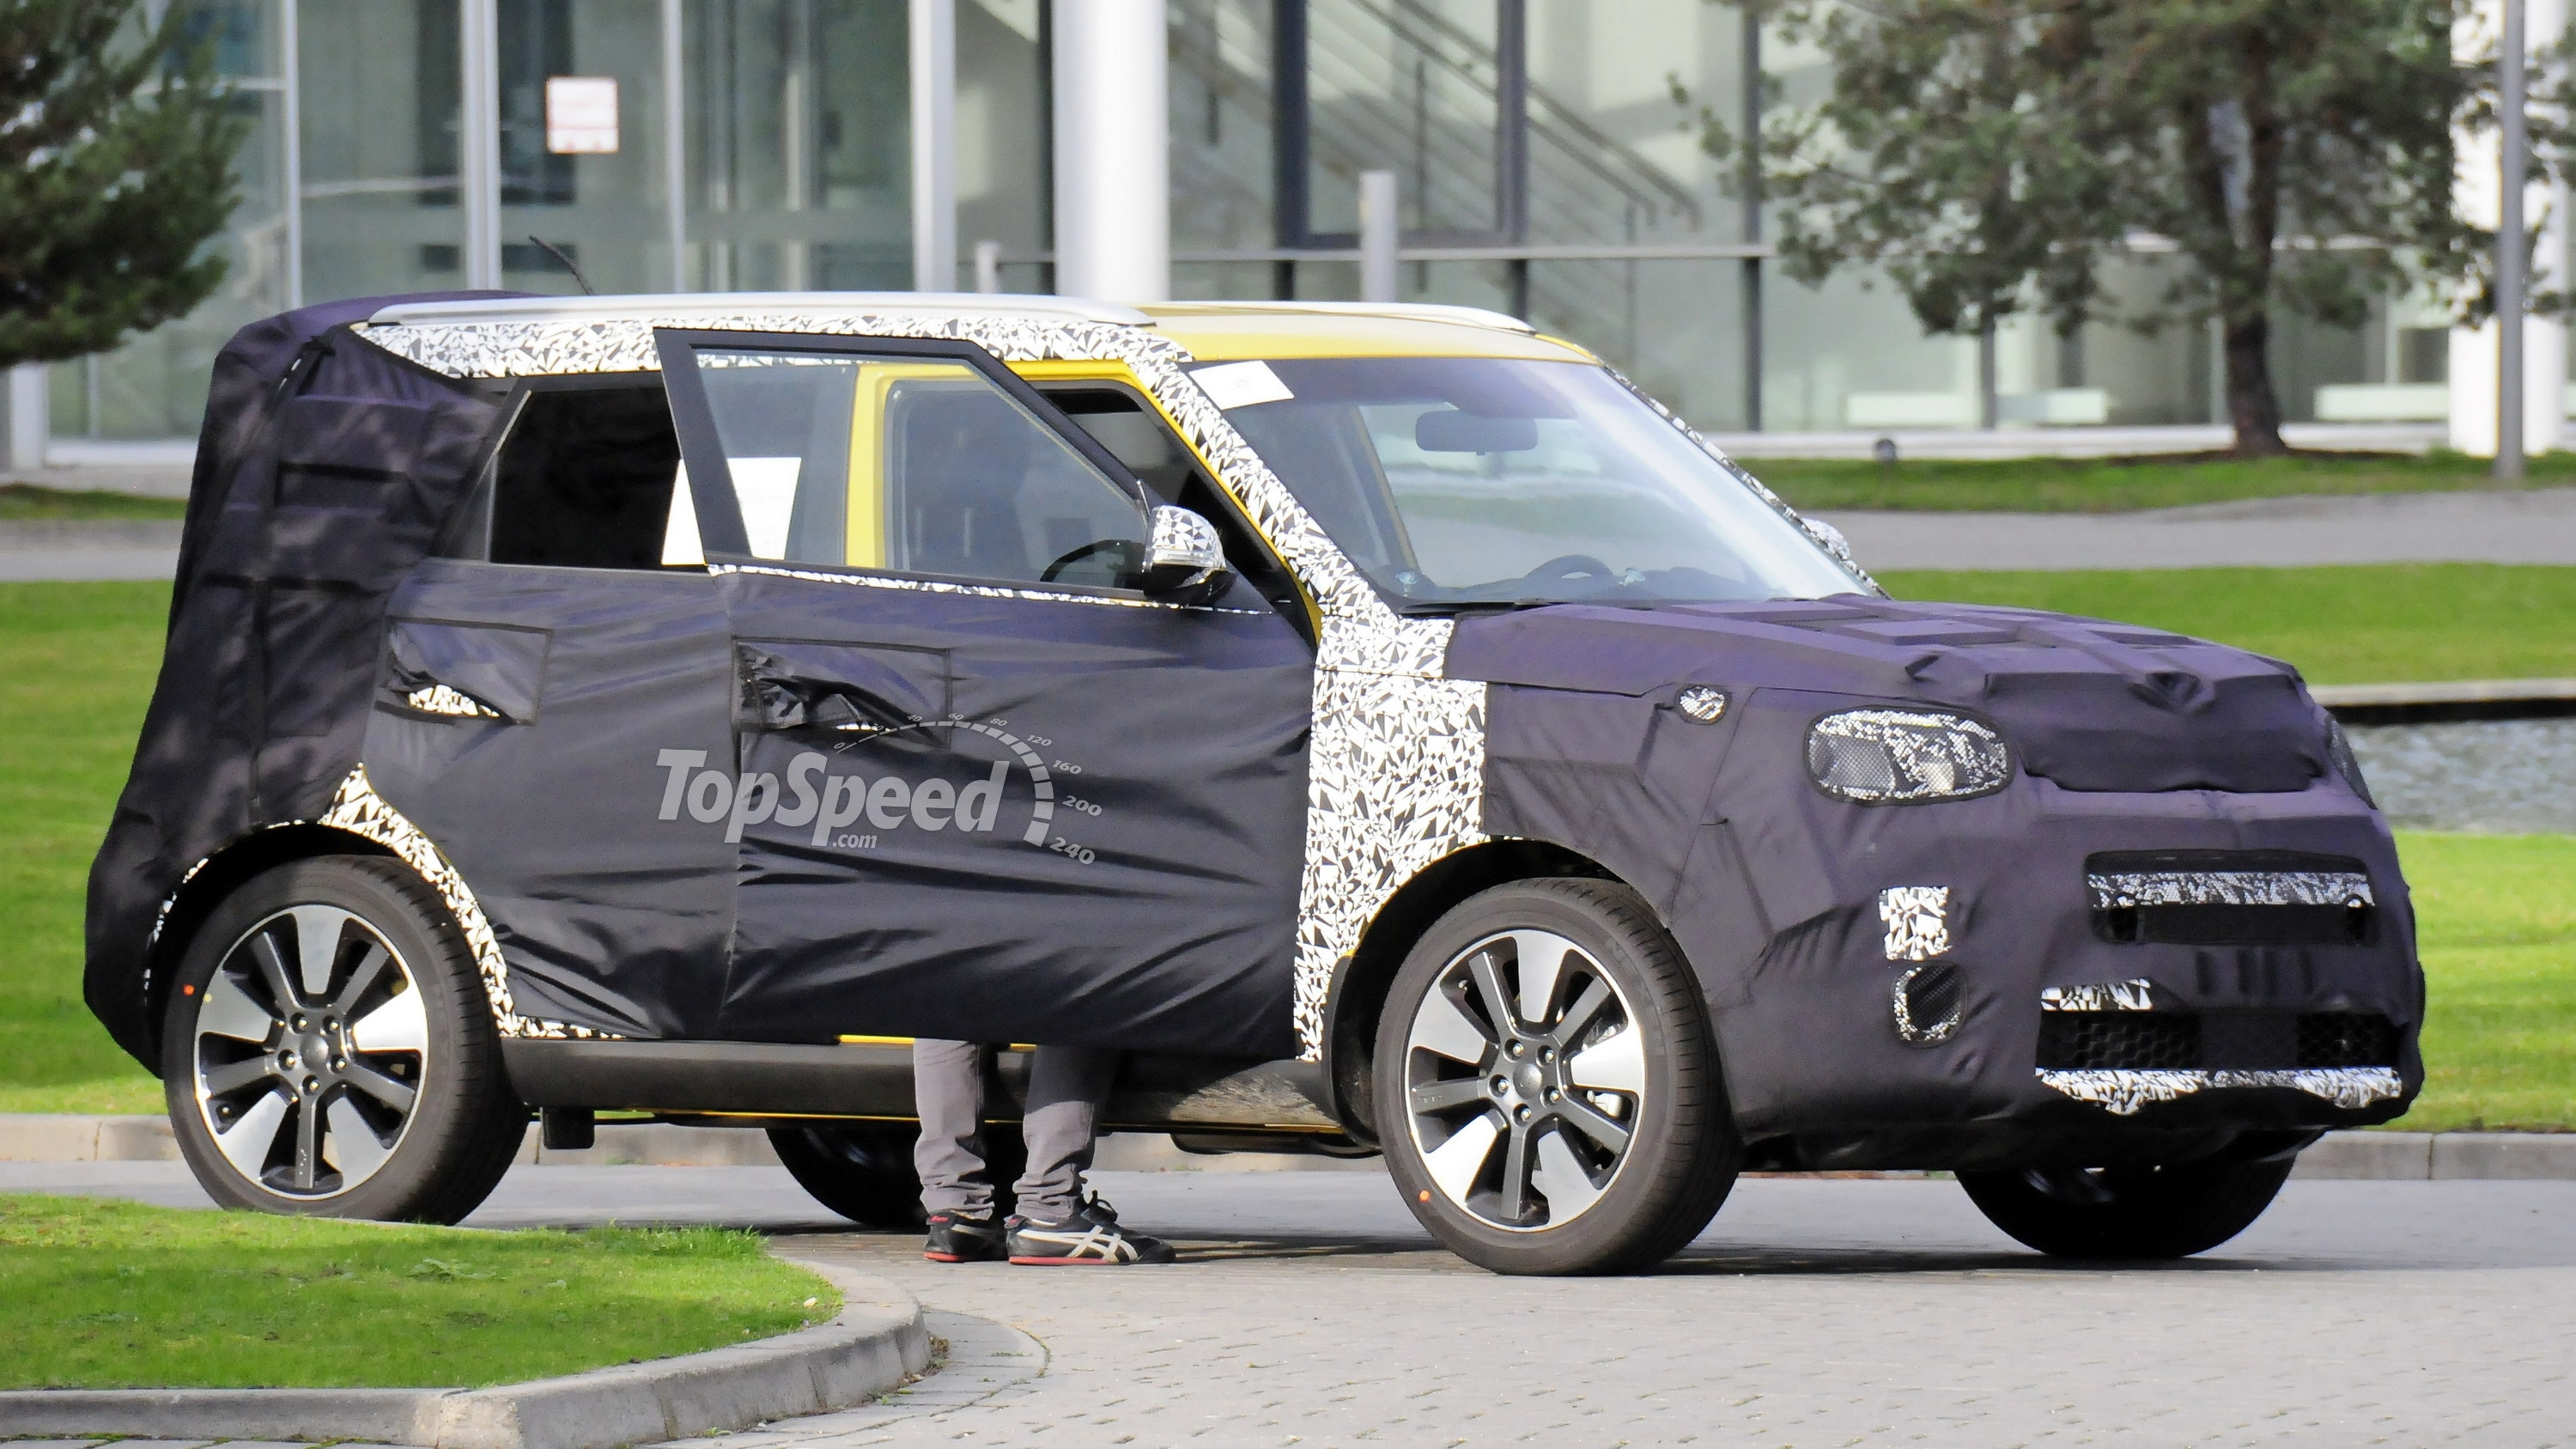 kia modelle 2018. Plain 2018 The Secondgeneration Kia Soul Was Introduced For The 2014 Model Year  Which Means It Will Still Be A Few More Years Before Present  On Kia Modelle 2018